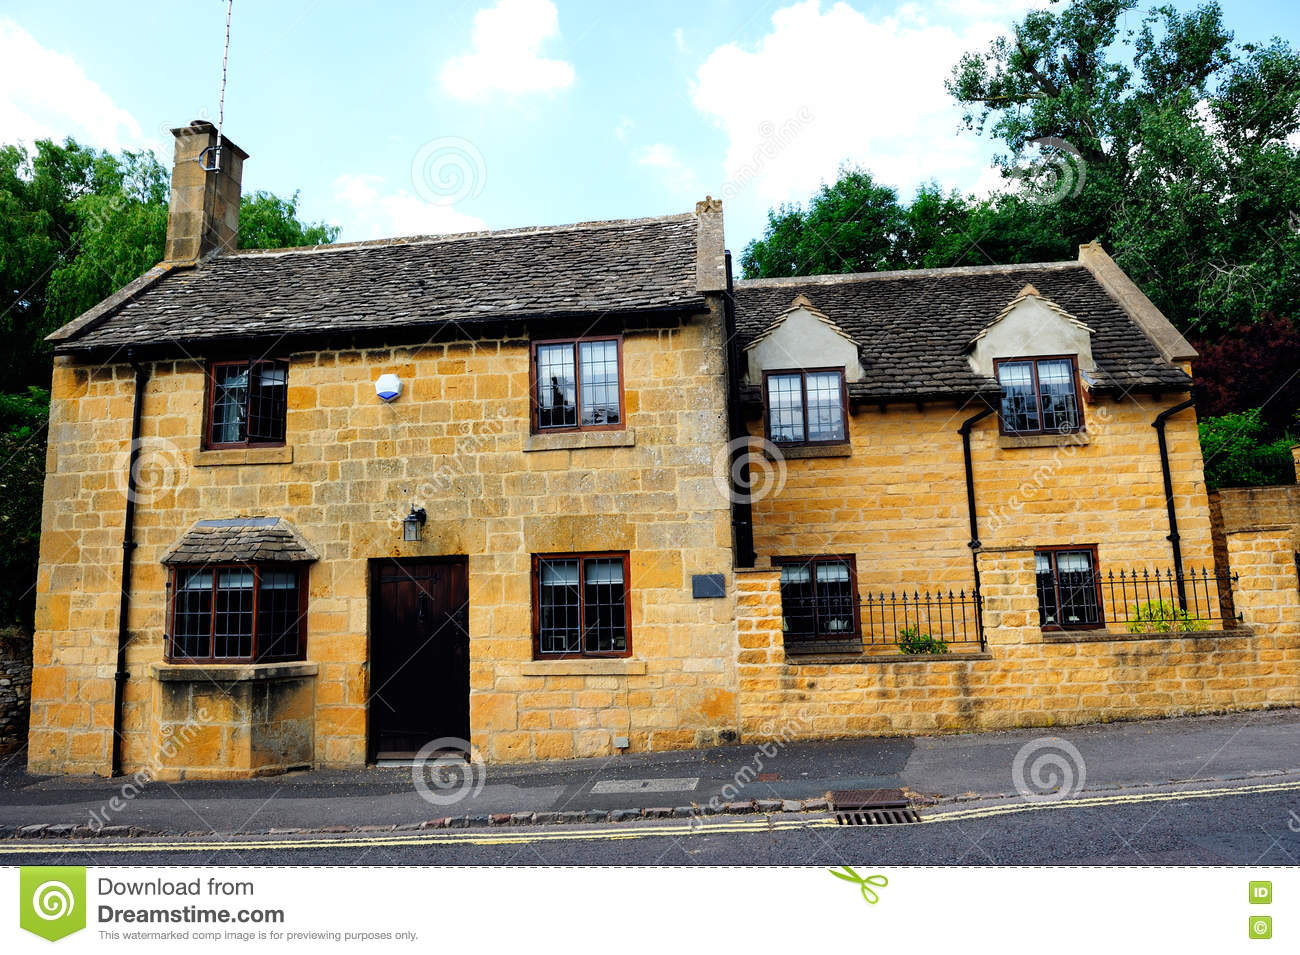 Maison de campagne anglaise dans cotswolds angleterre r for Style campagne anglaise